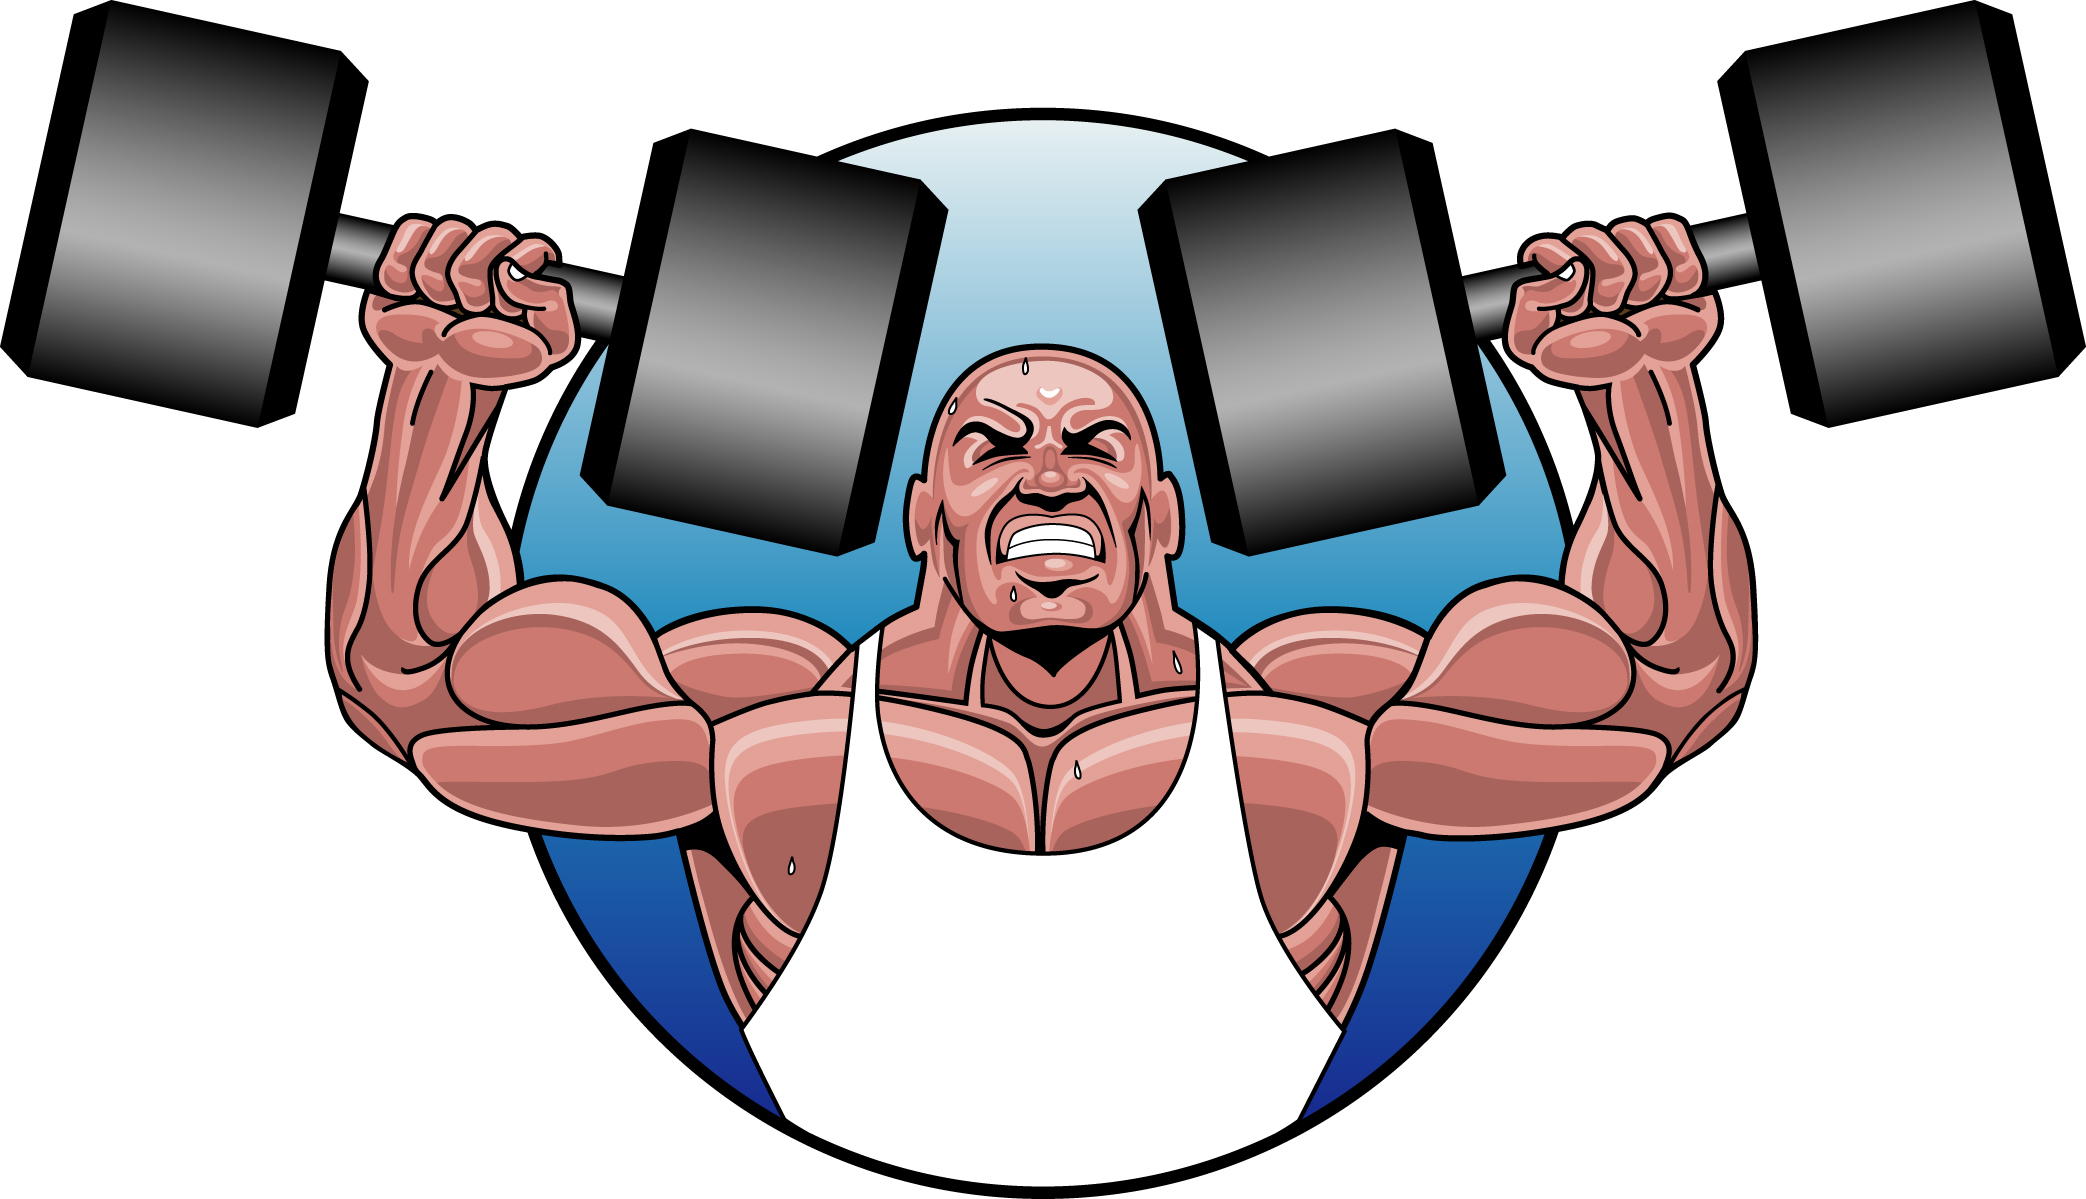 Body bilder clip art jpg transparent Body builder clipart - ClipartFest jpg transparent